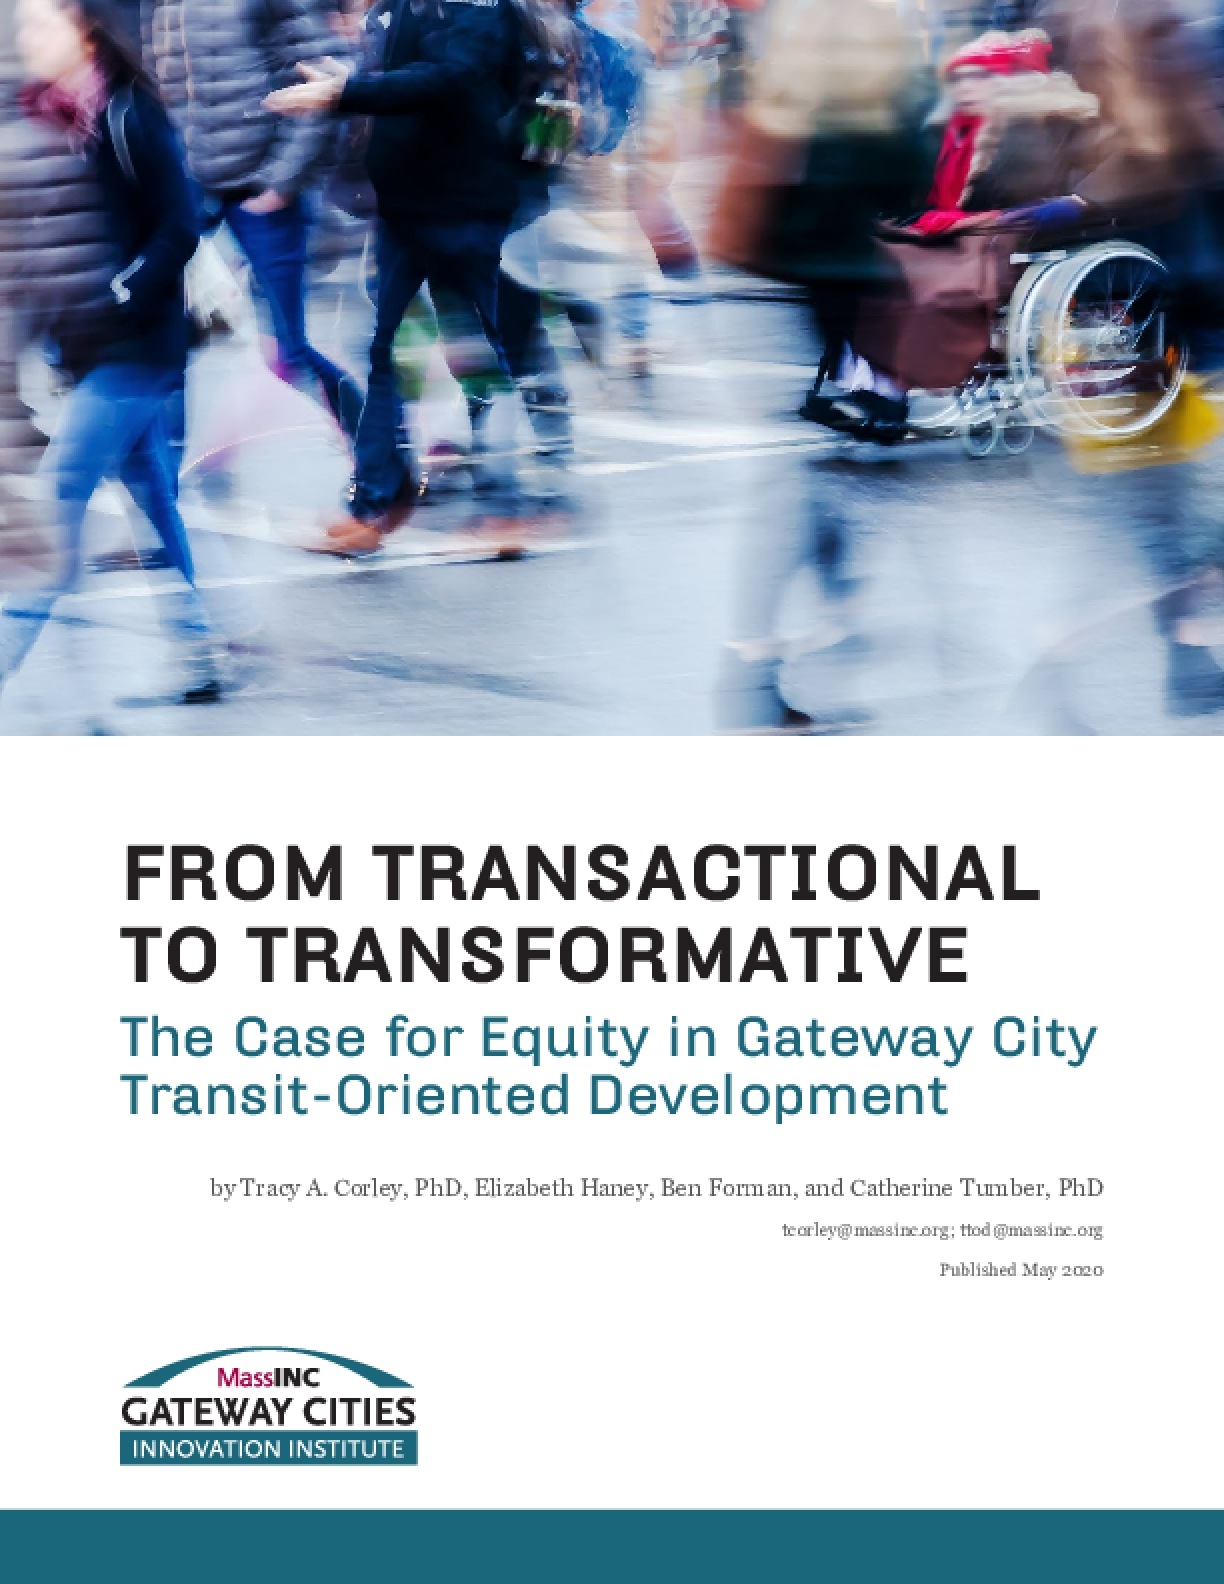 From Transactional to Transformative: The Case for Equity in Gateway City Transit-Oriented Development